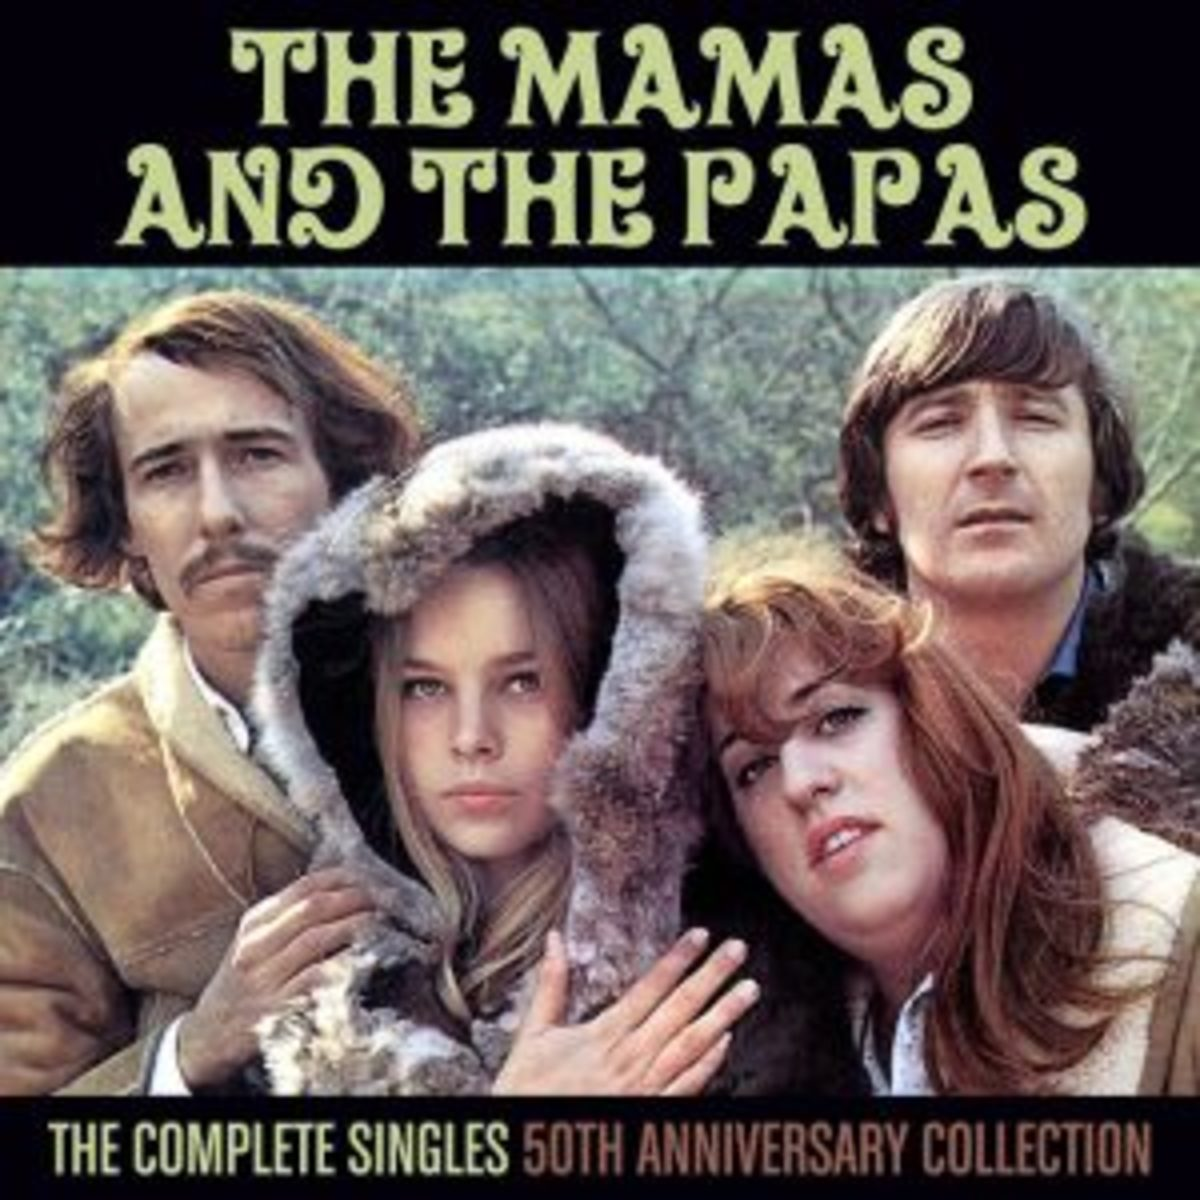 mamas-cd-collection